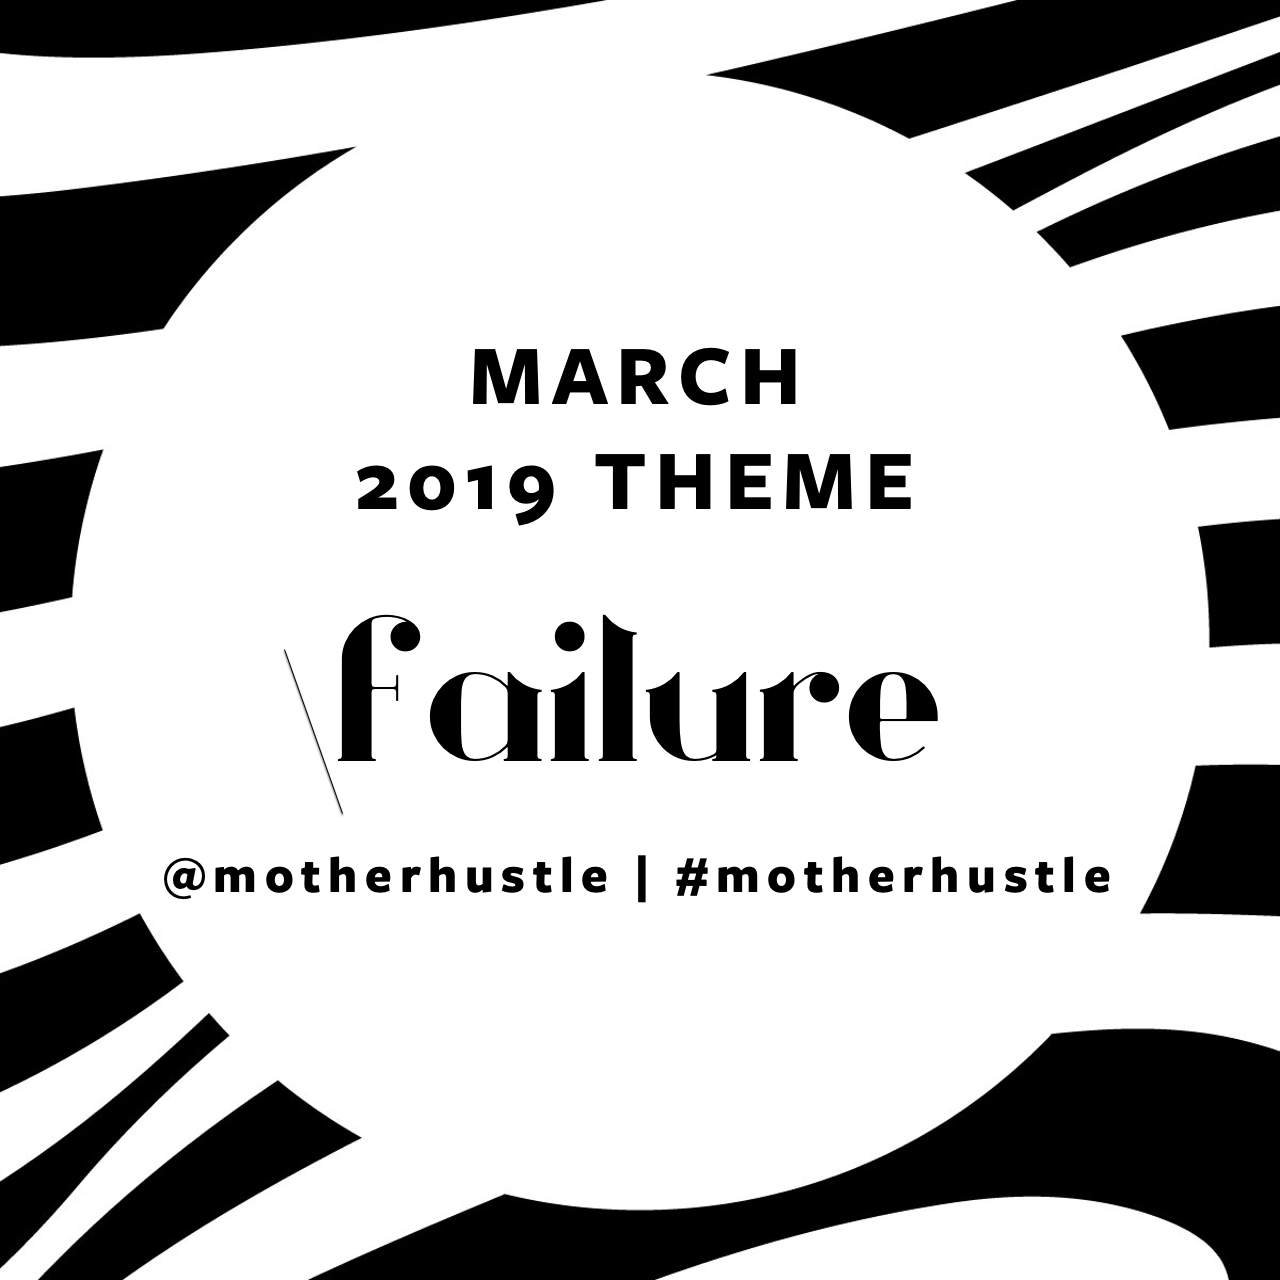 MotherHustle Theme March 2019 - Failure